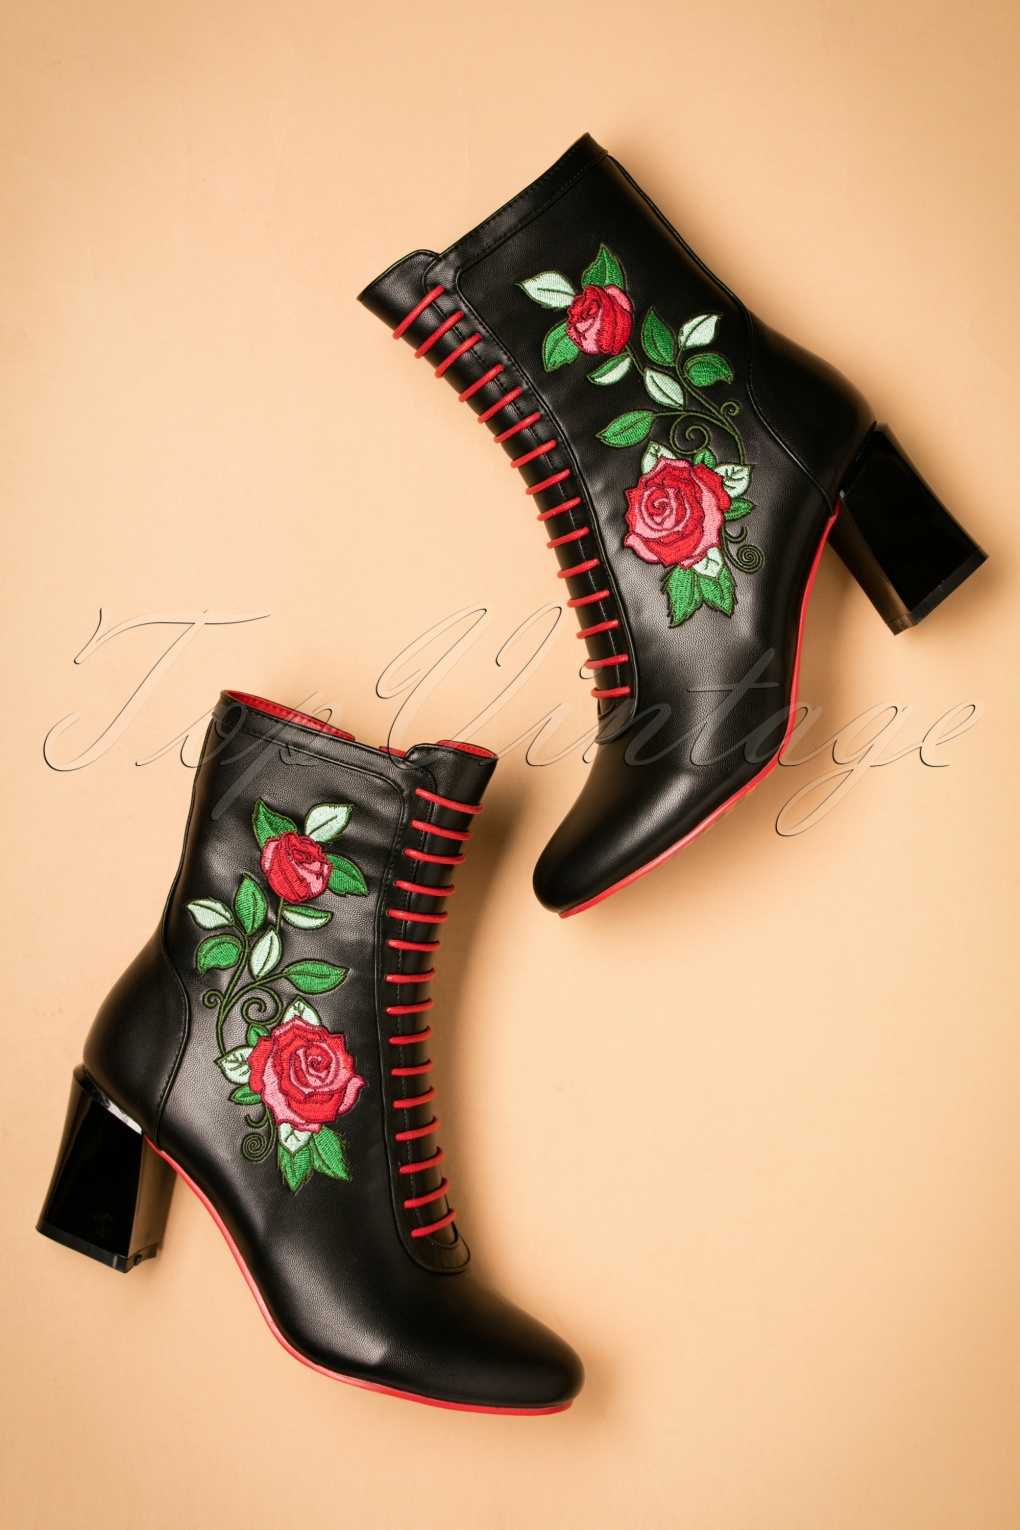 Vintage Style Shoes, Vintage Inspired Shoes 60s Fantasy Floral Booties in Black £85.38 AT vintagedancer.com